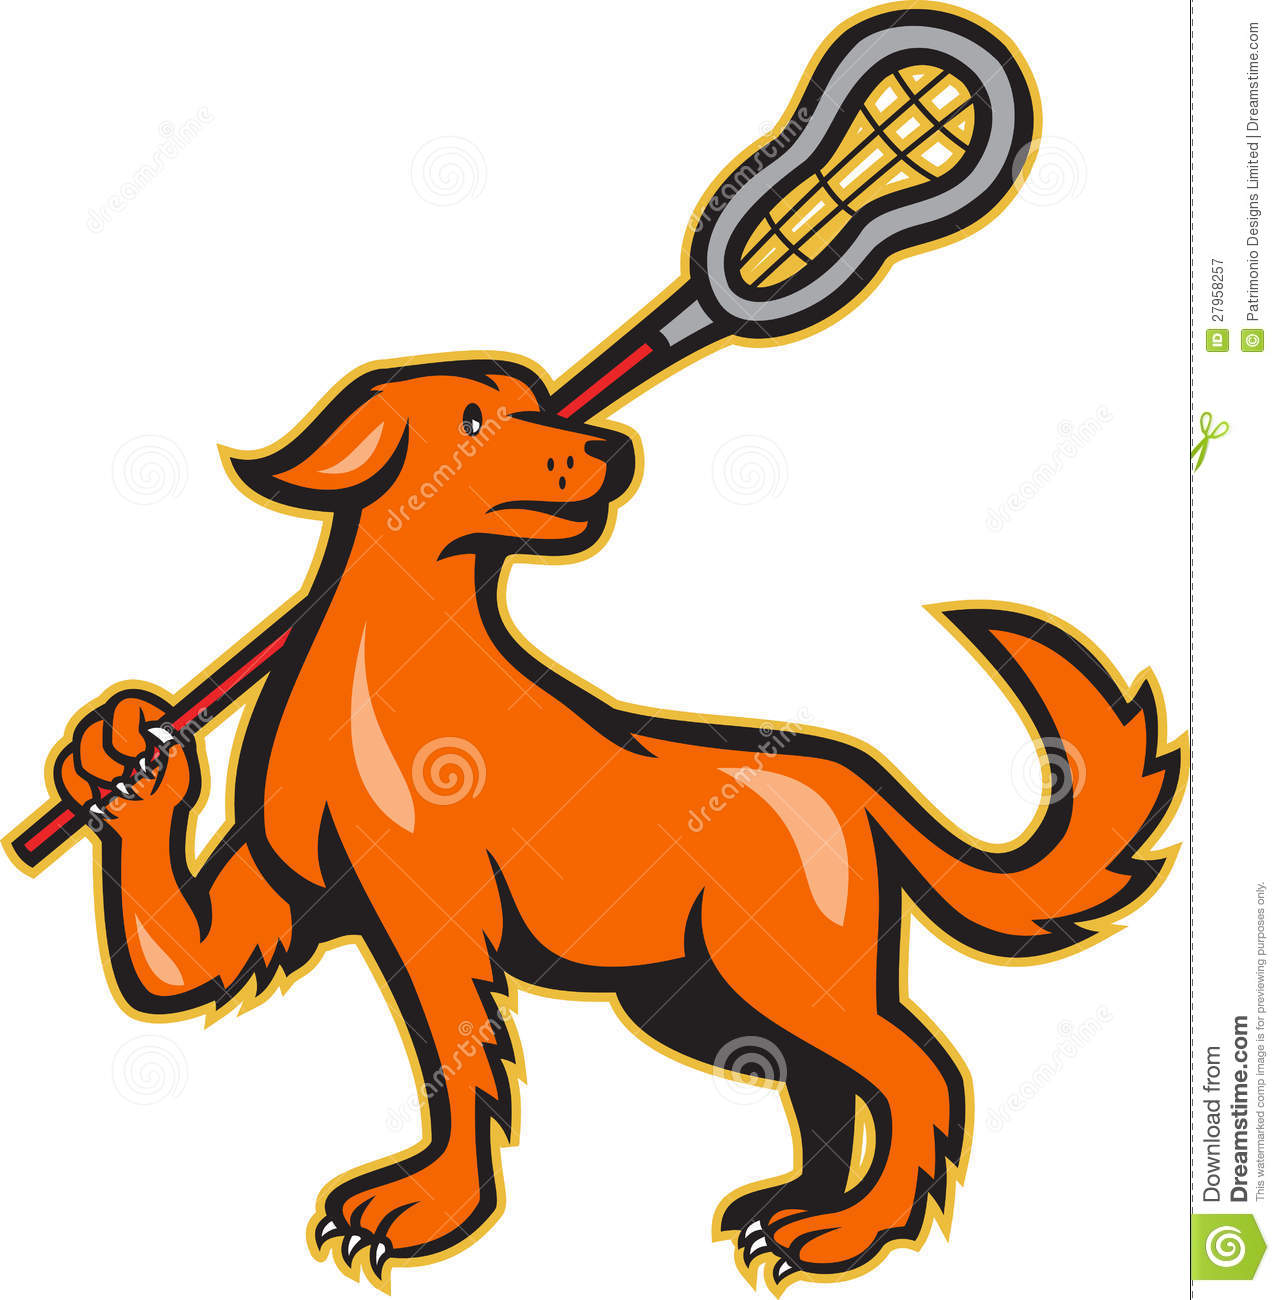 dog with lacrosse stick side view stock vector illustration of rh dreamstime com Free Horse Clip Art Happy Dog Clip Art Free